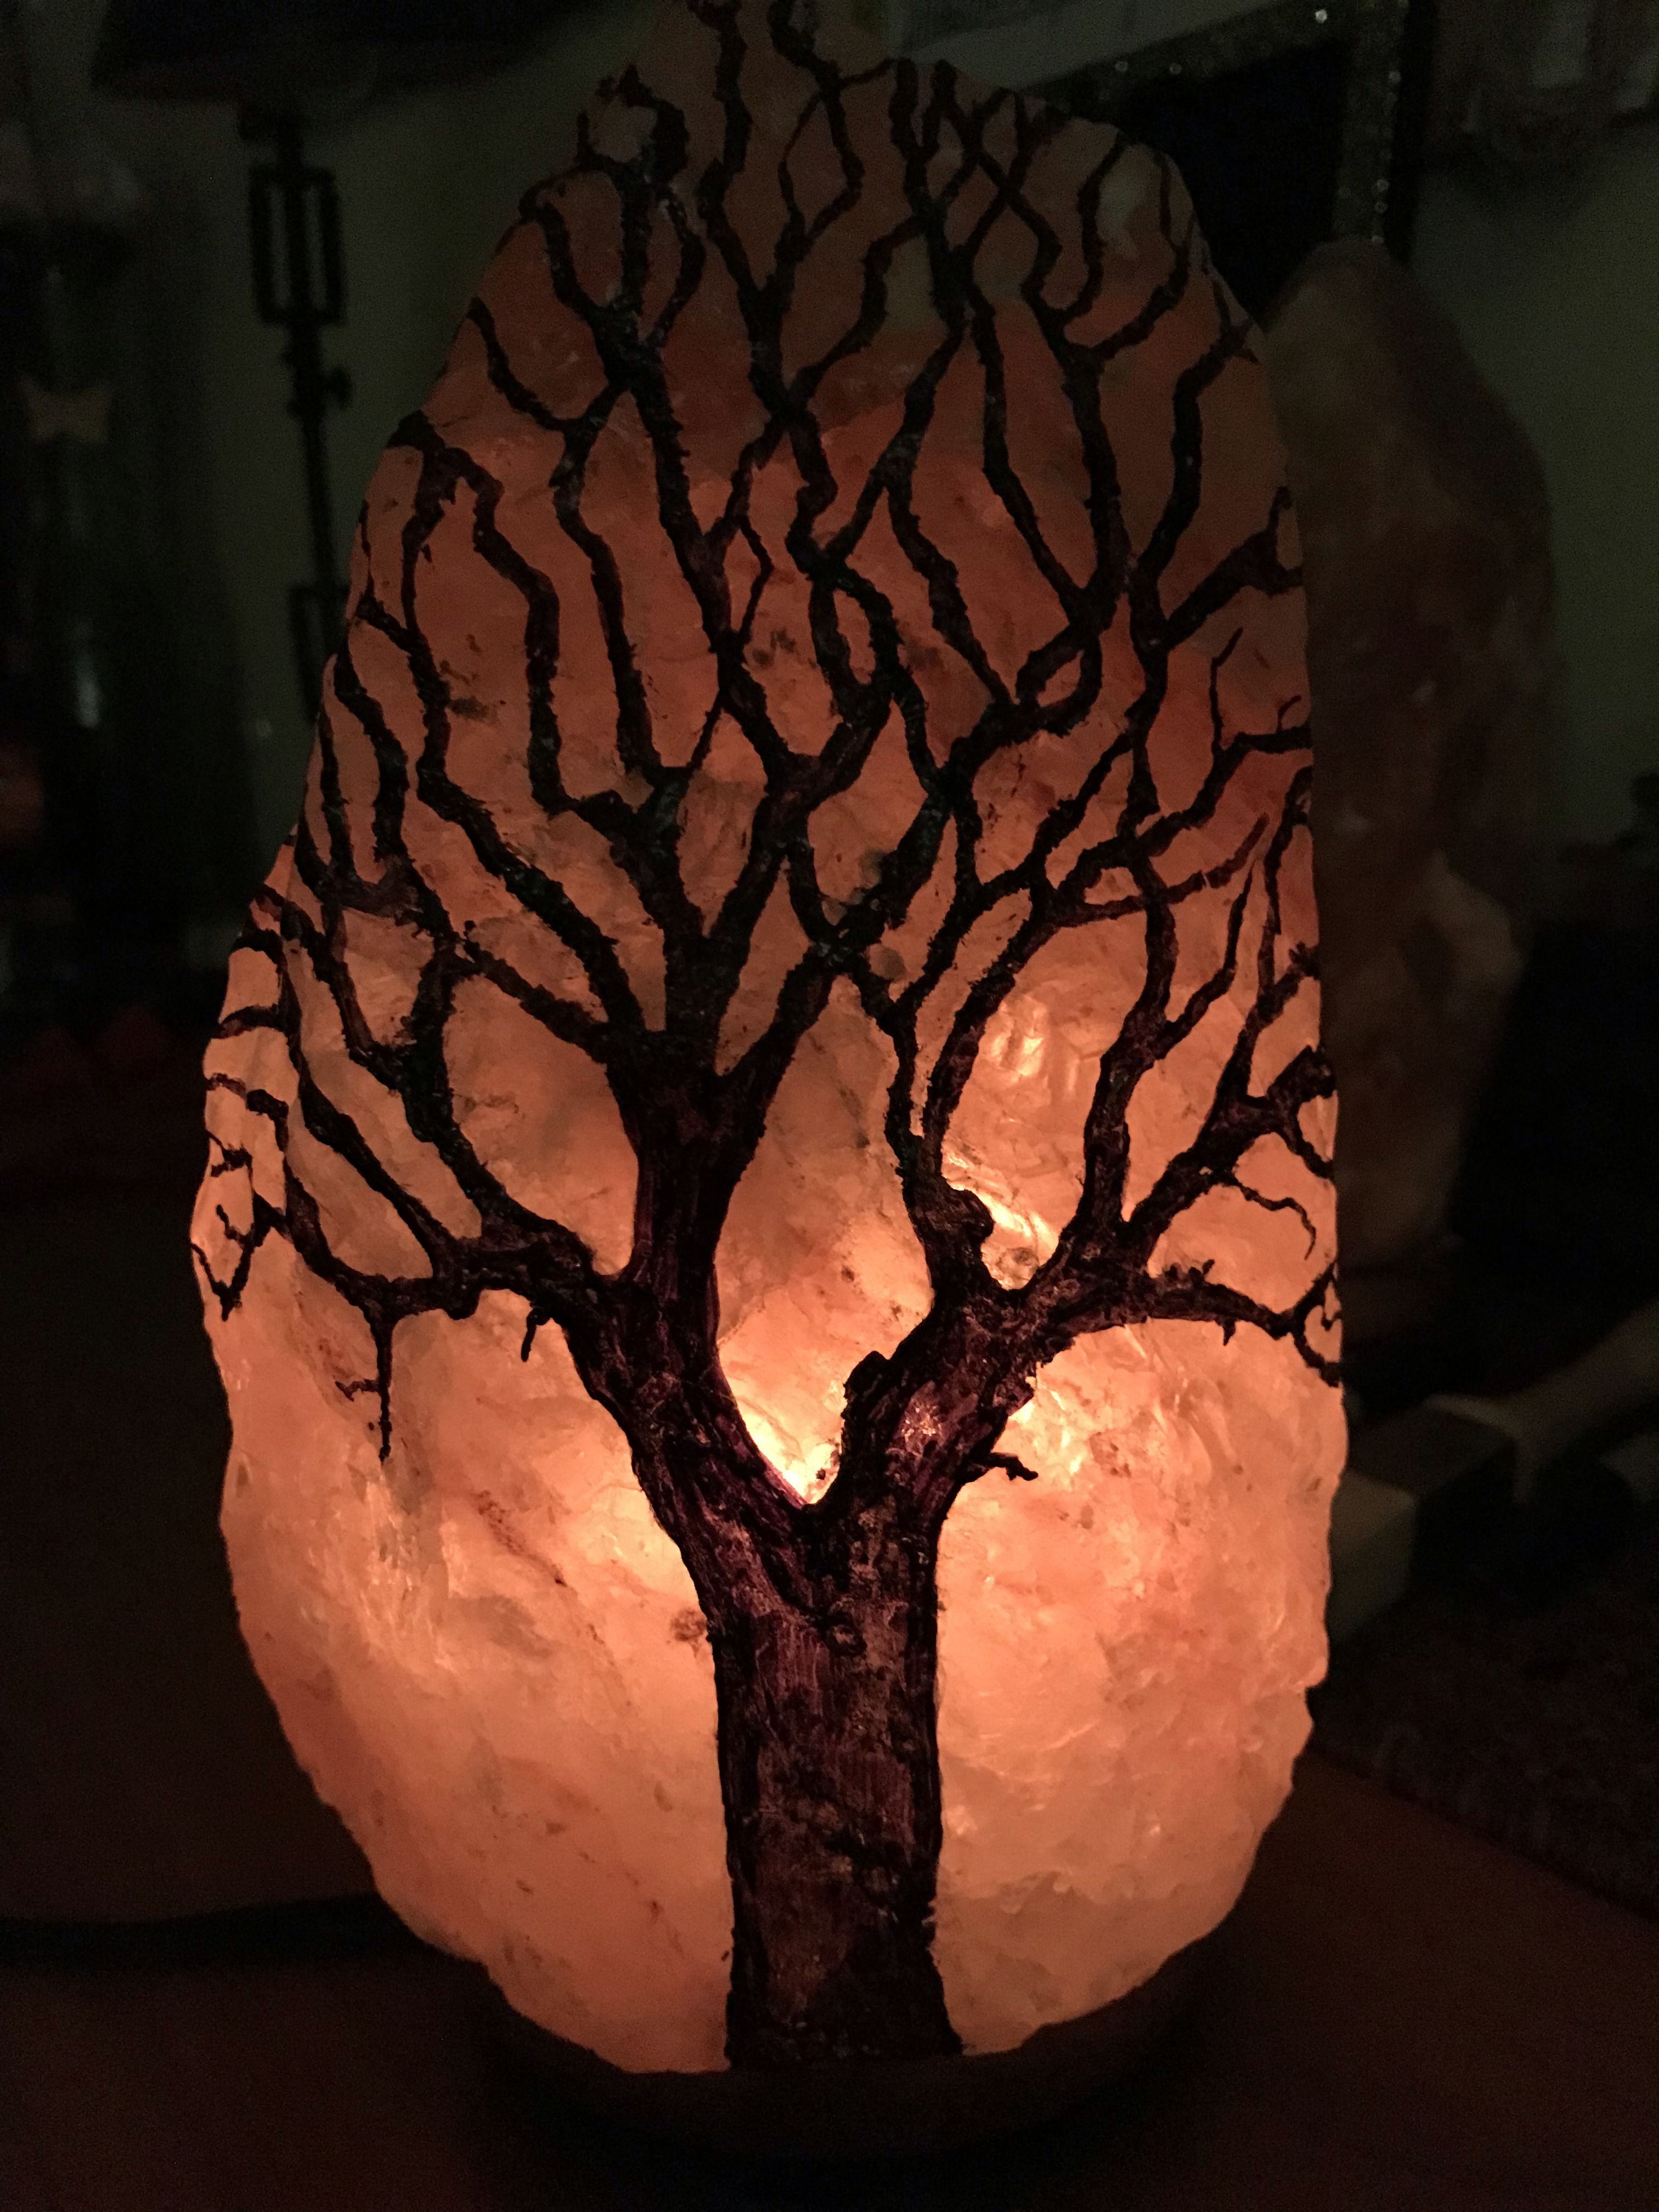 Woodland Series Coming Soon To Bittie S Shop Himalayan Salt Lamp Unique Items Products Salt Art